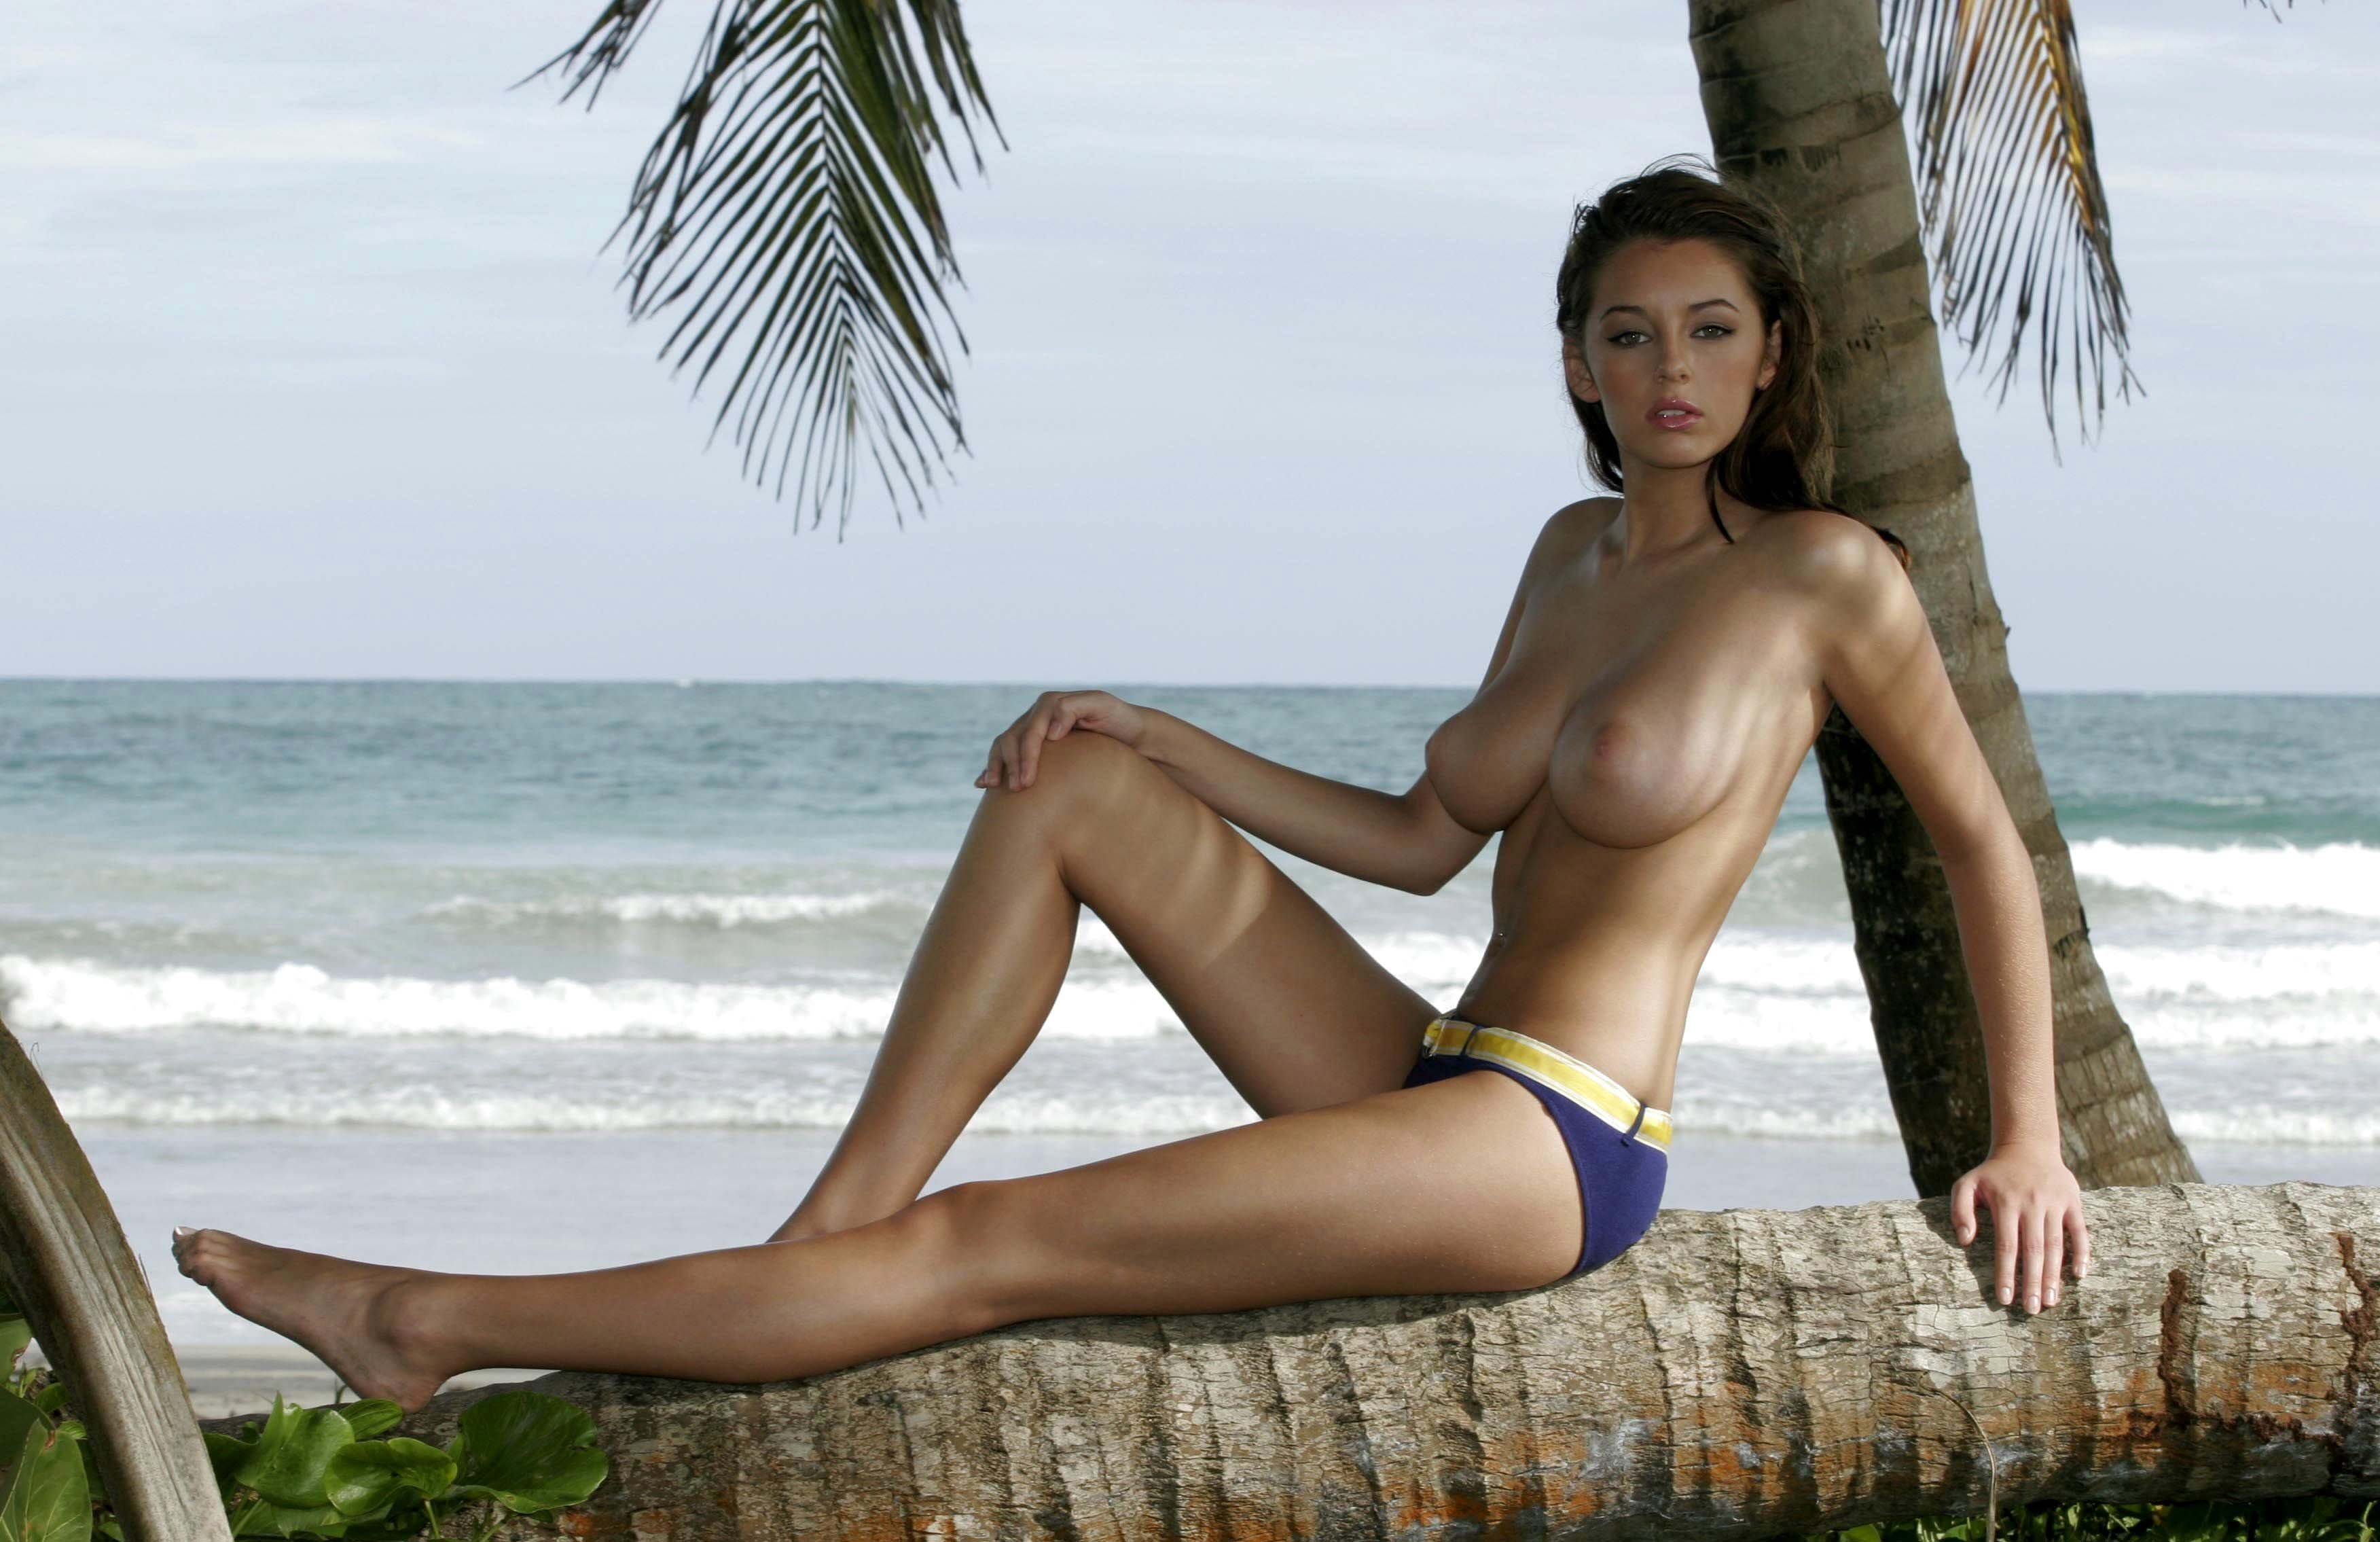 vanessa-girls-topless-chelsey-story-nude